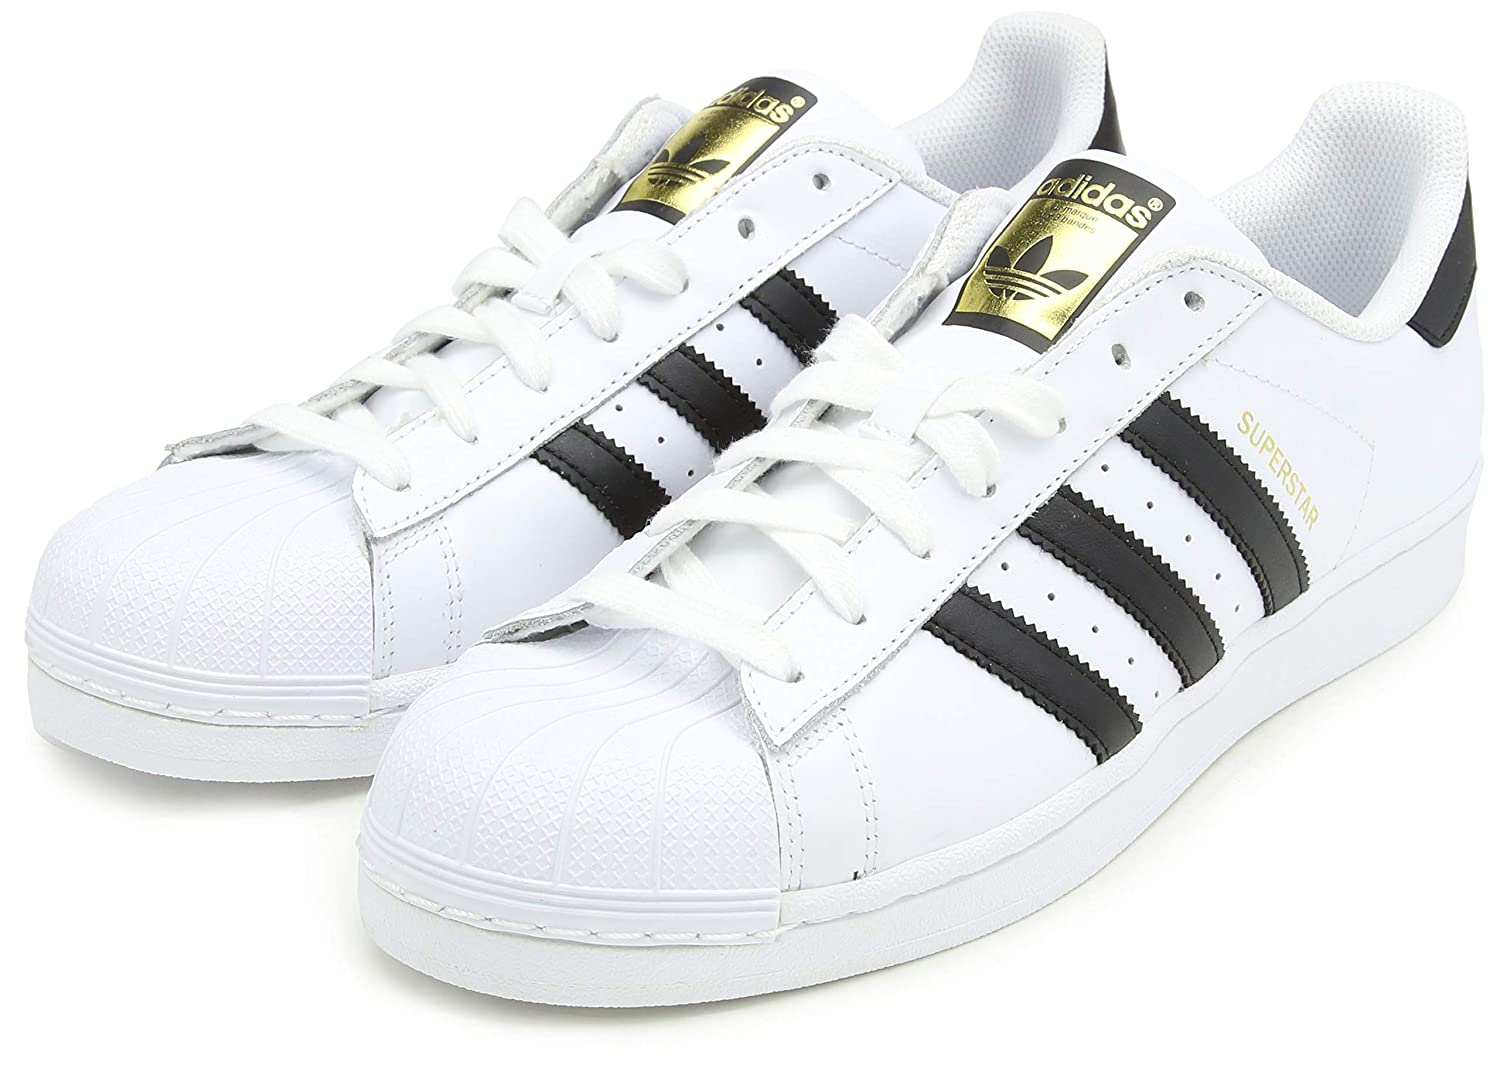 pretty nice 7865a 4251c adidas Originals Women's Superstar Fashion Sneakers